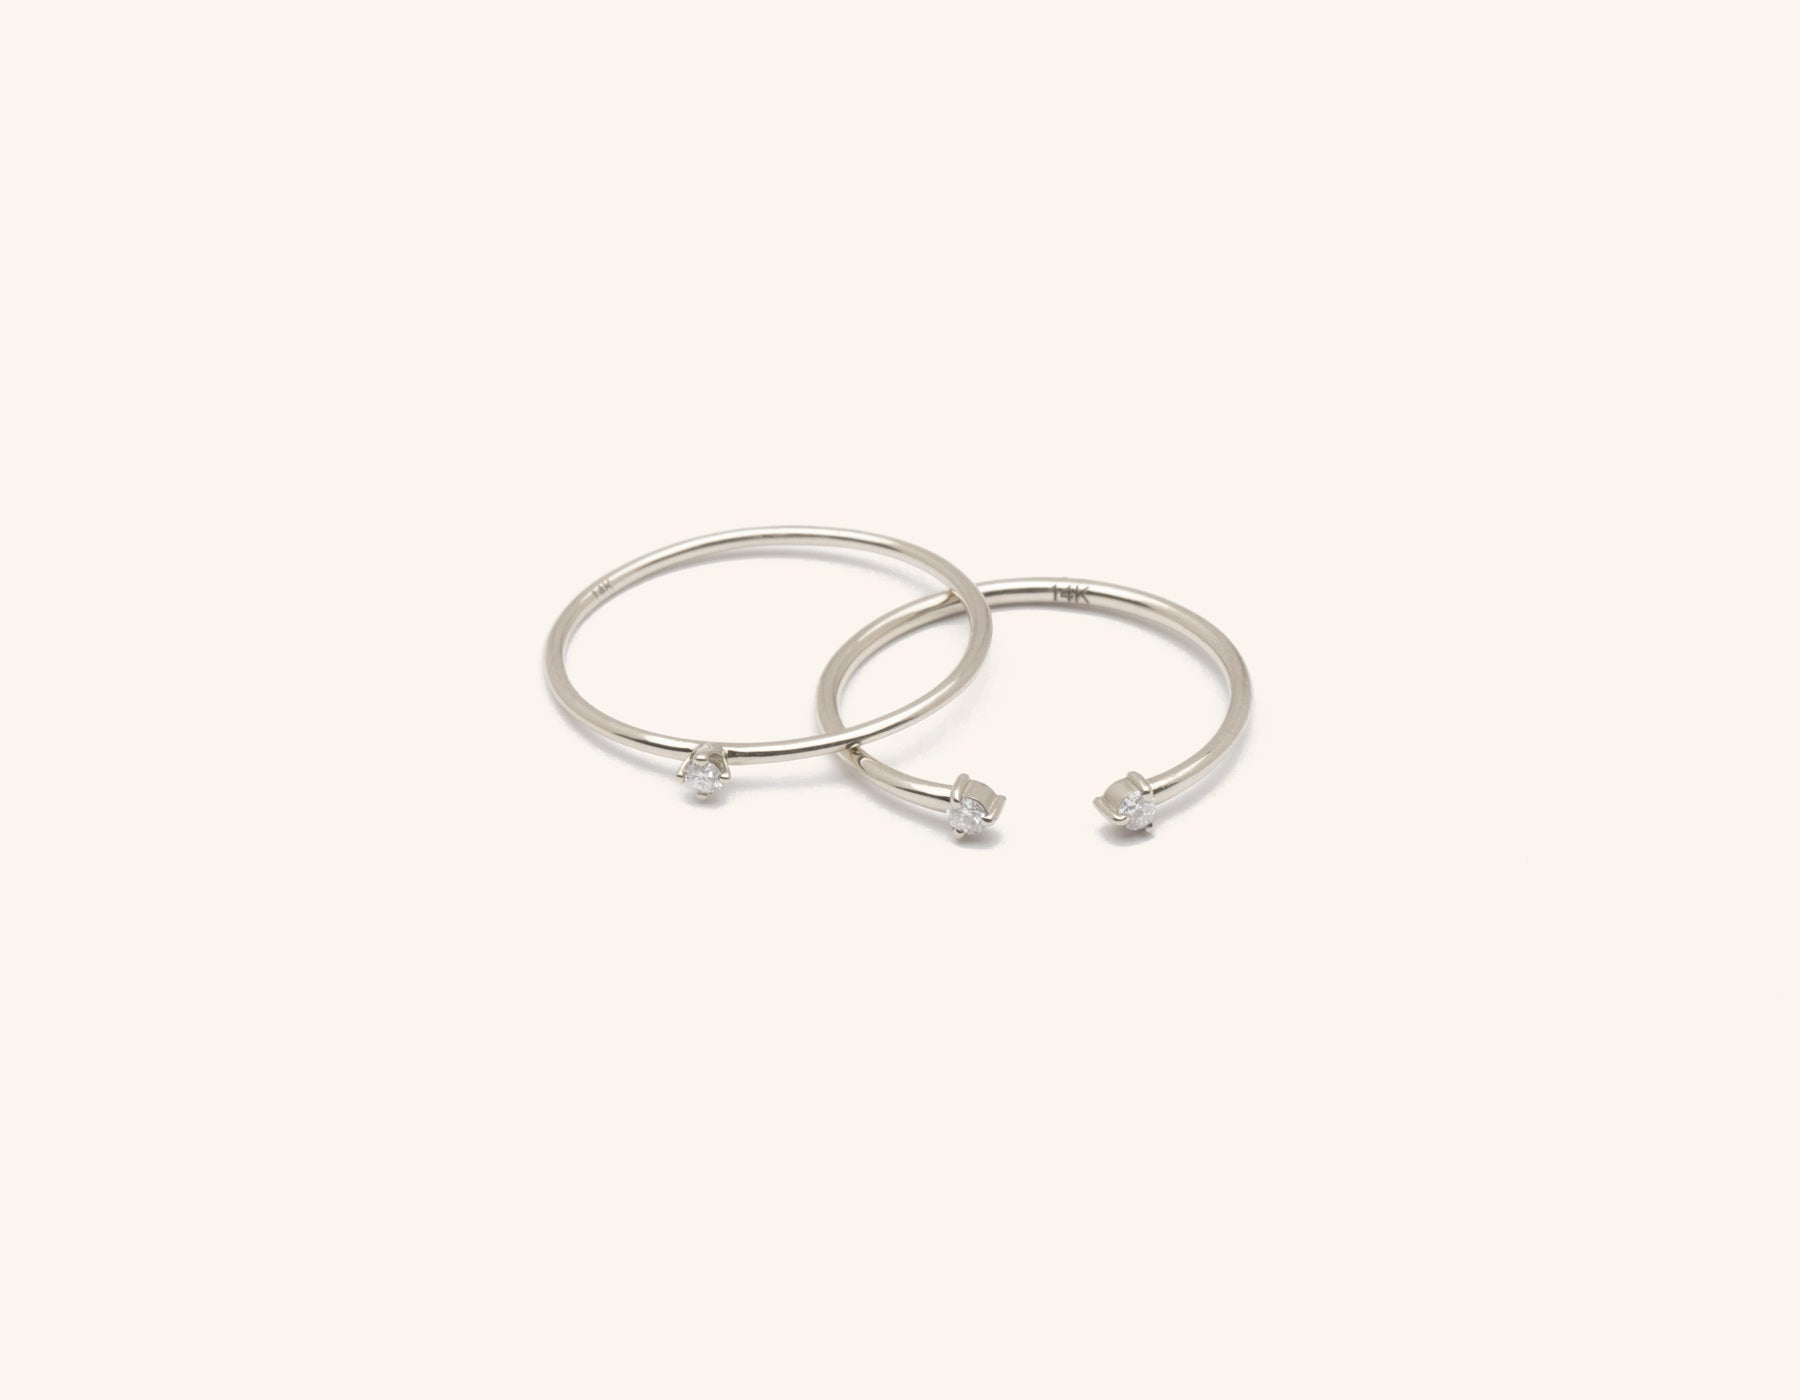 Solid 14K gold Constellation Stack diamond ring bundle by Vrai & Oro minimalist classic sustainable jewelry, 14K White Gold